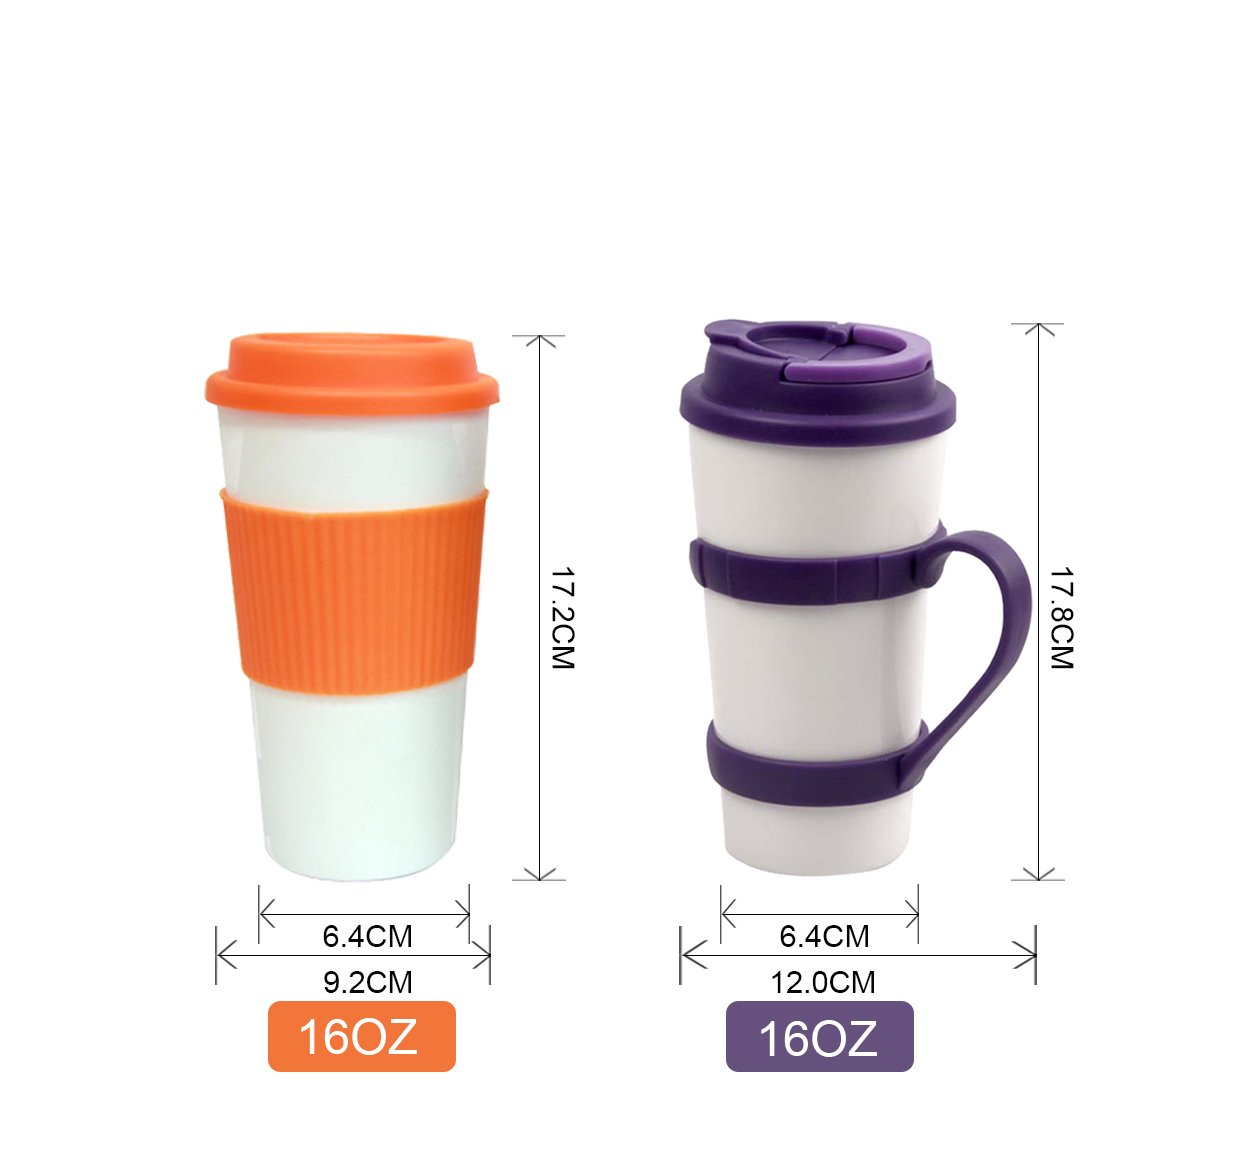 Coffee tumbler_Accurate Size